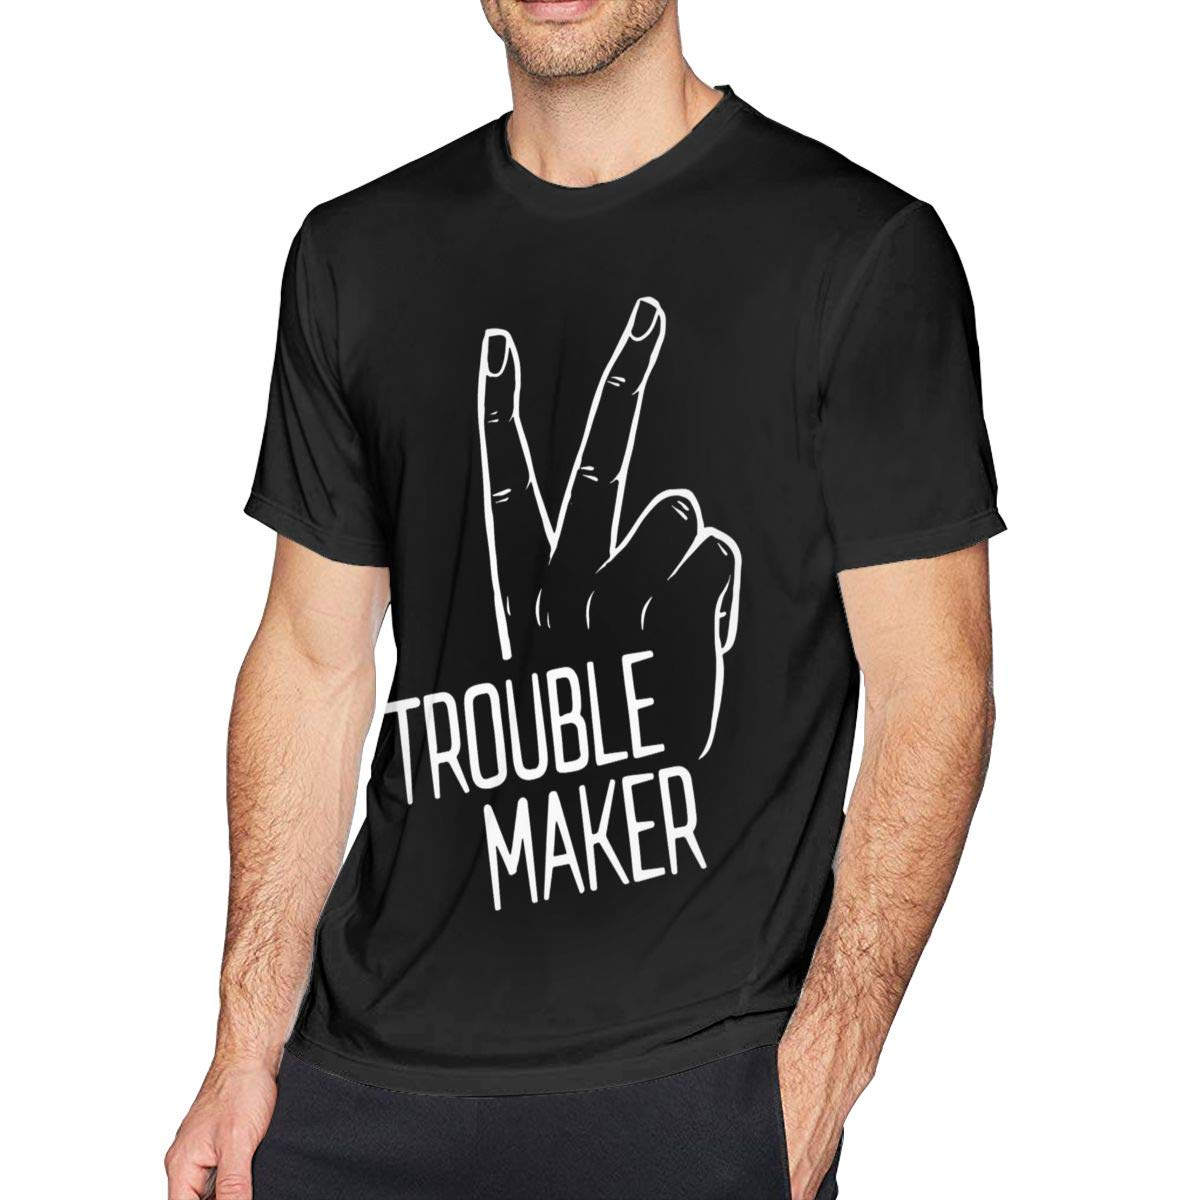 Bfcxbgdsig Trouble Maker Soft and Comfortable Fashionable Tshirt with Round Collar Black